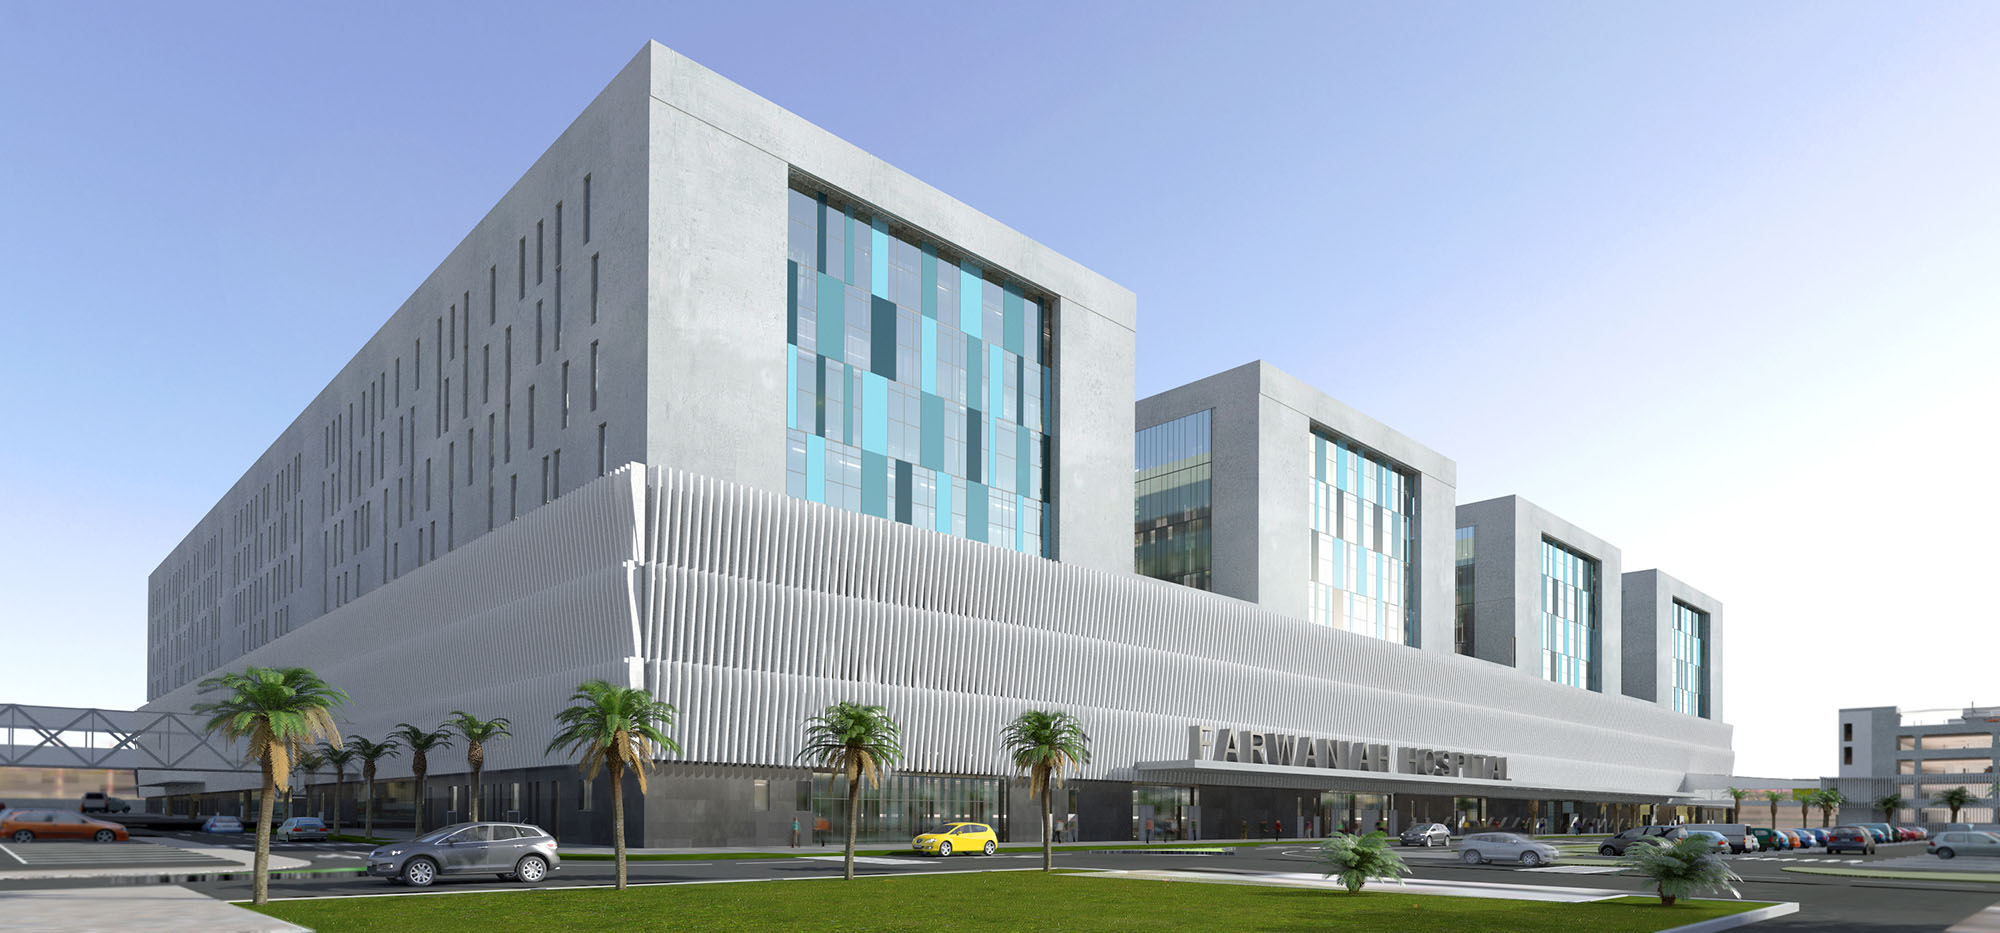 New Farwaniya Hospital